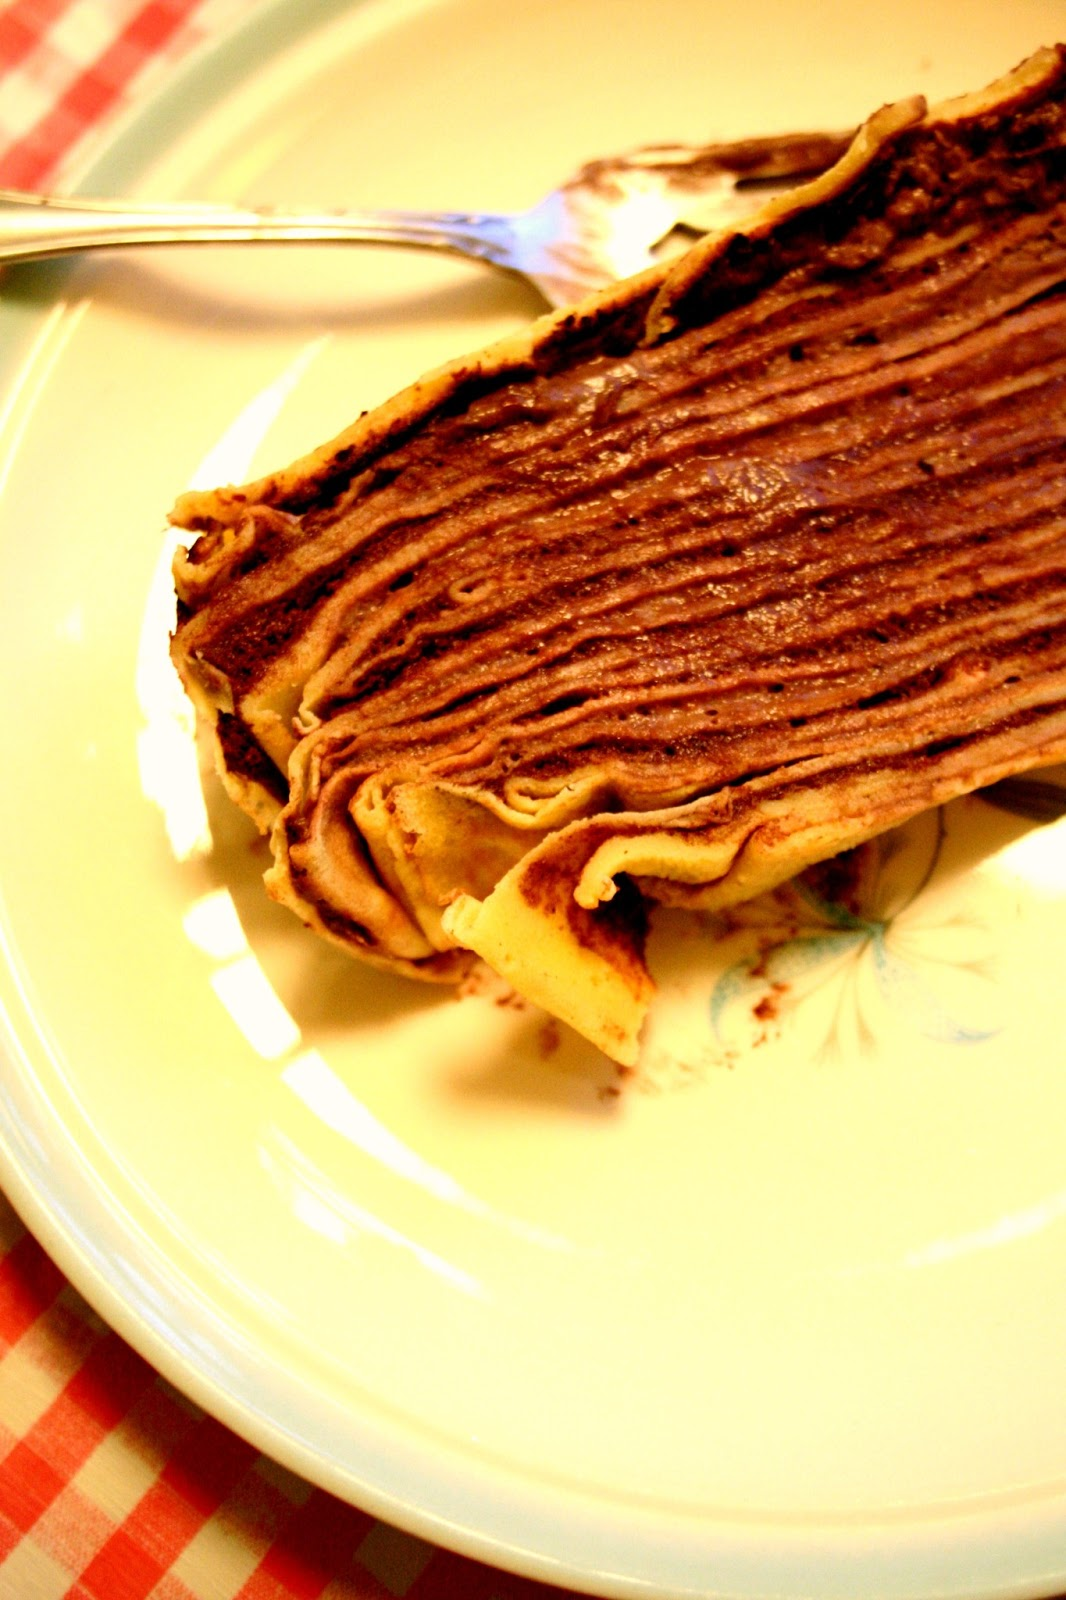 le gateau de crepe ala chocolat (or something like that)